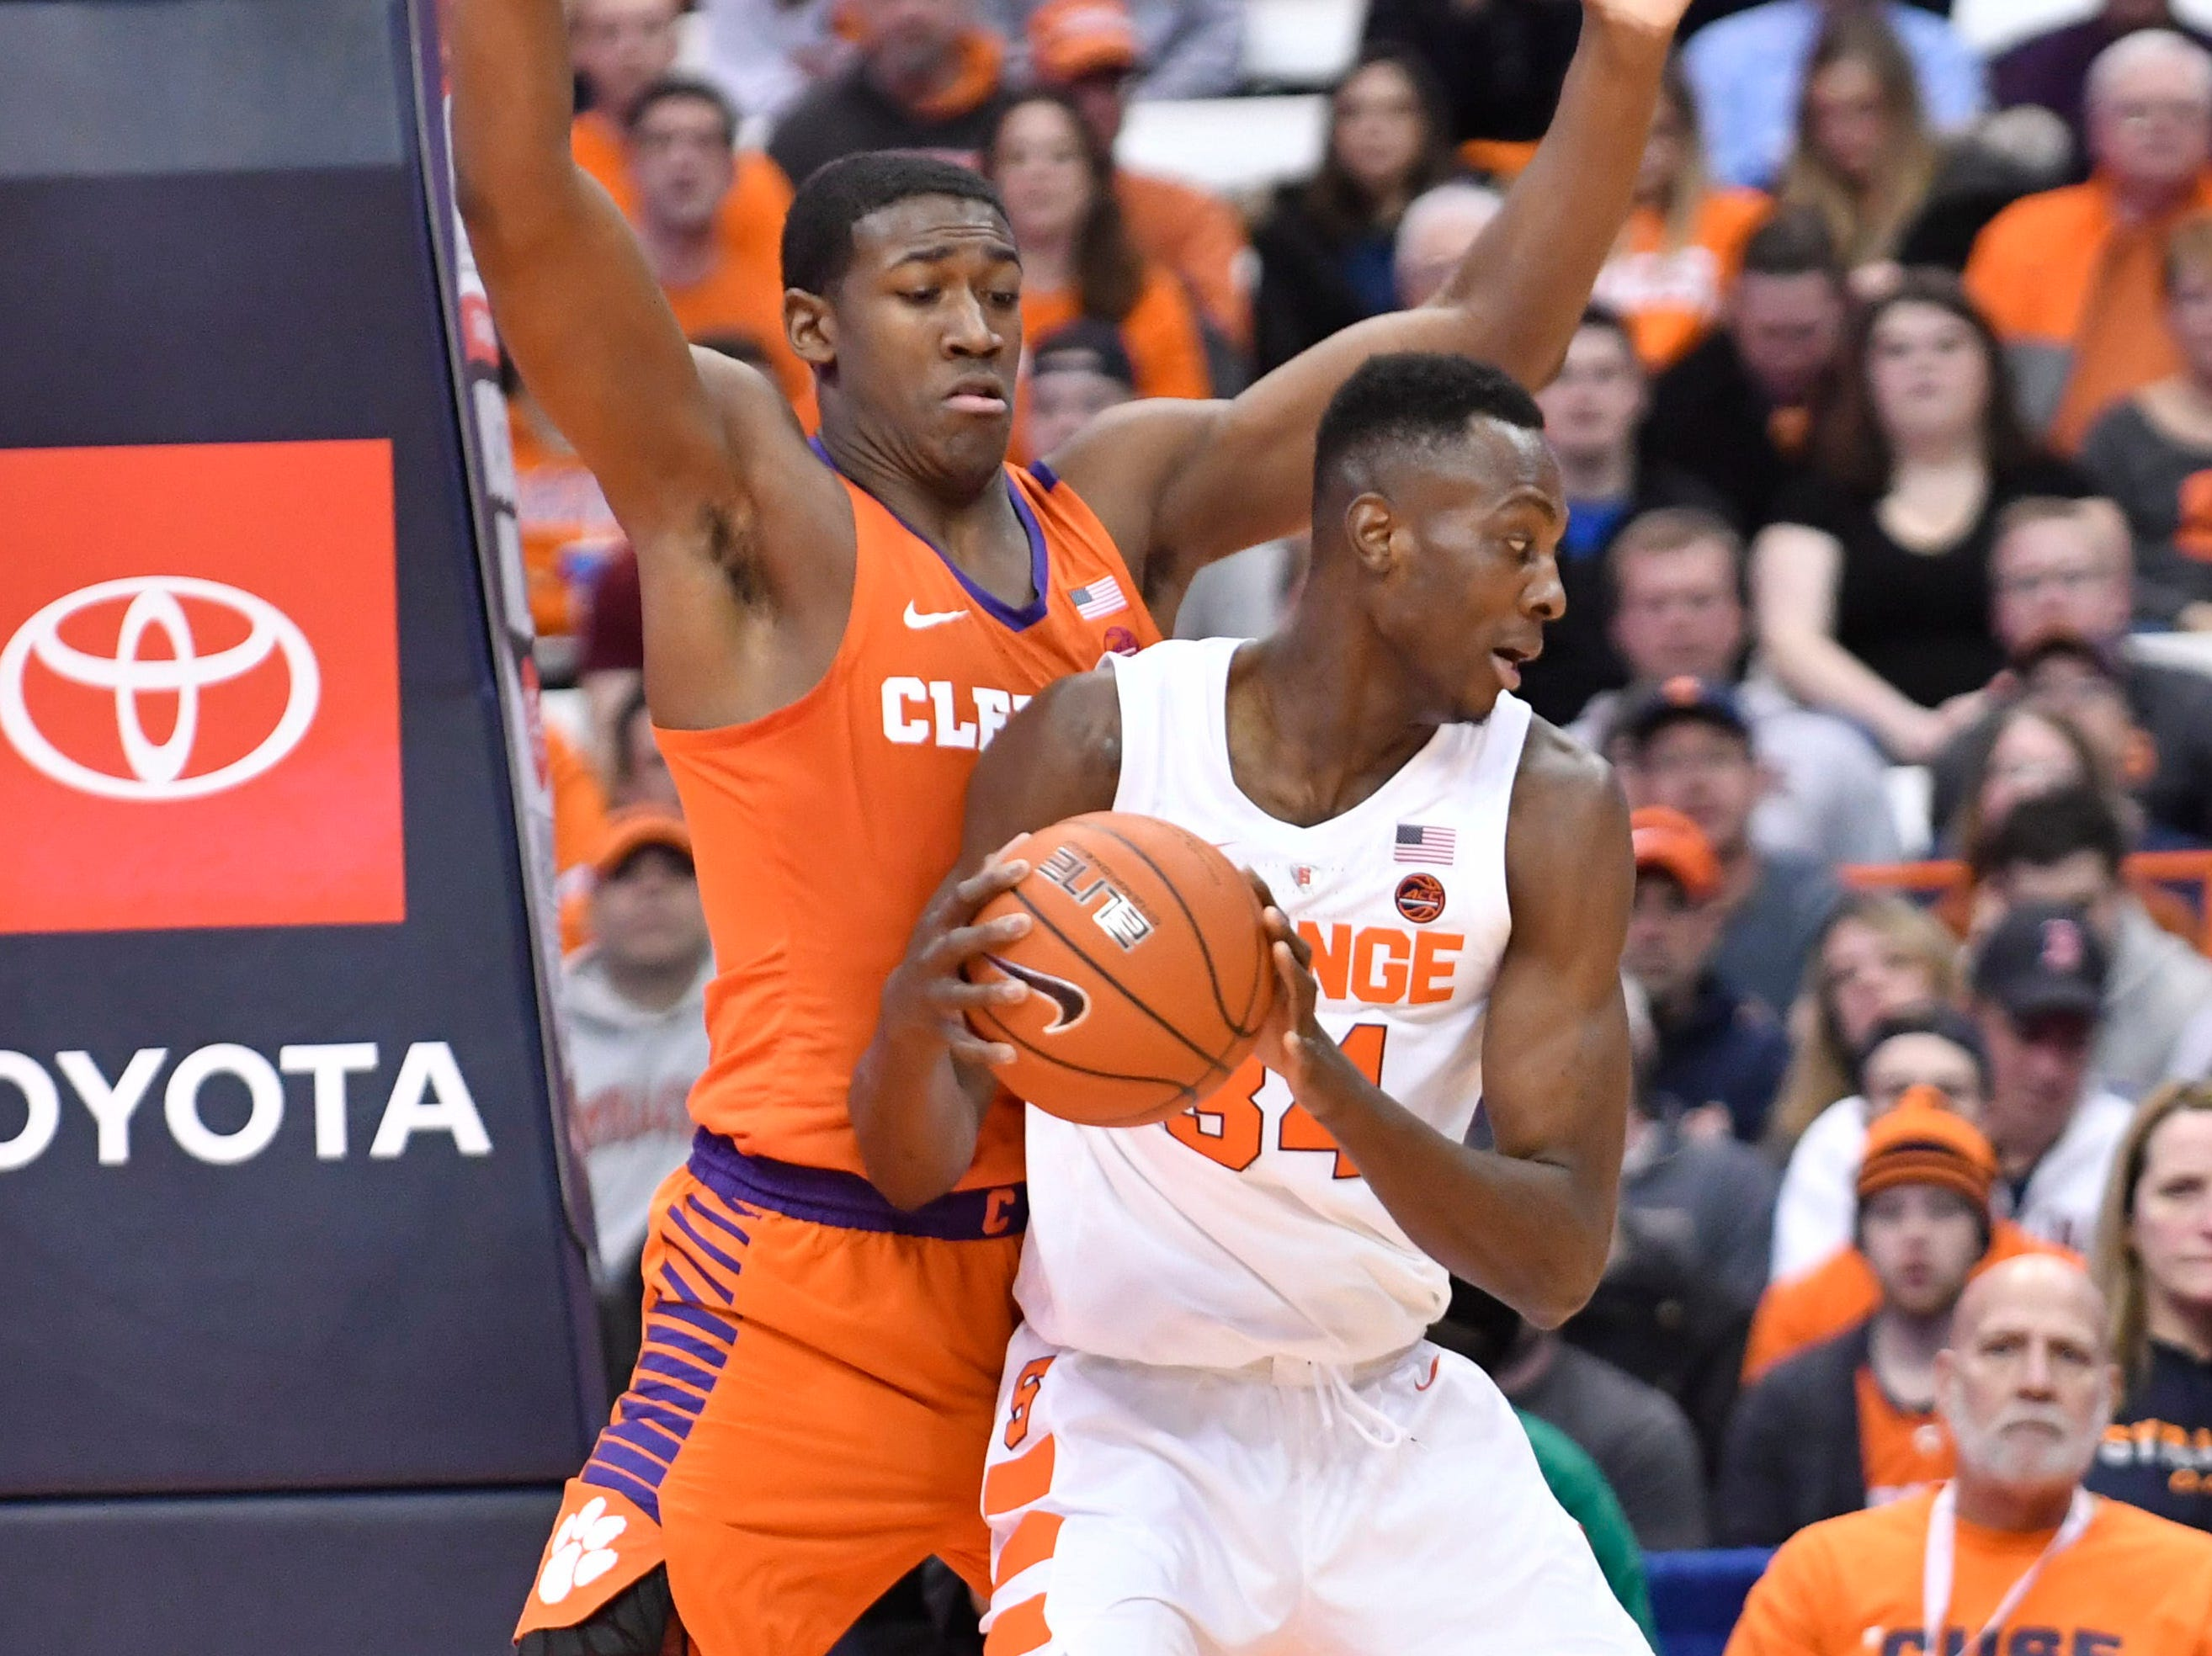 Jan 9, 2019; Syracuse, NY, USA; Syracuse Orange forward Bourama Sidibe (34) posts up against Clemson Tigers center Trey Jemison (55) during the first half at the Carrier Dome.